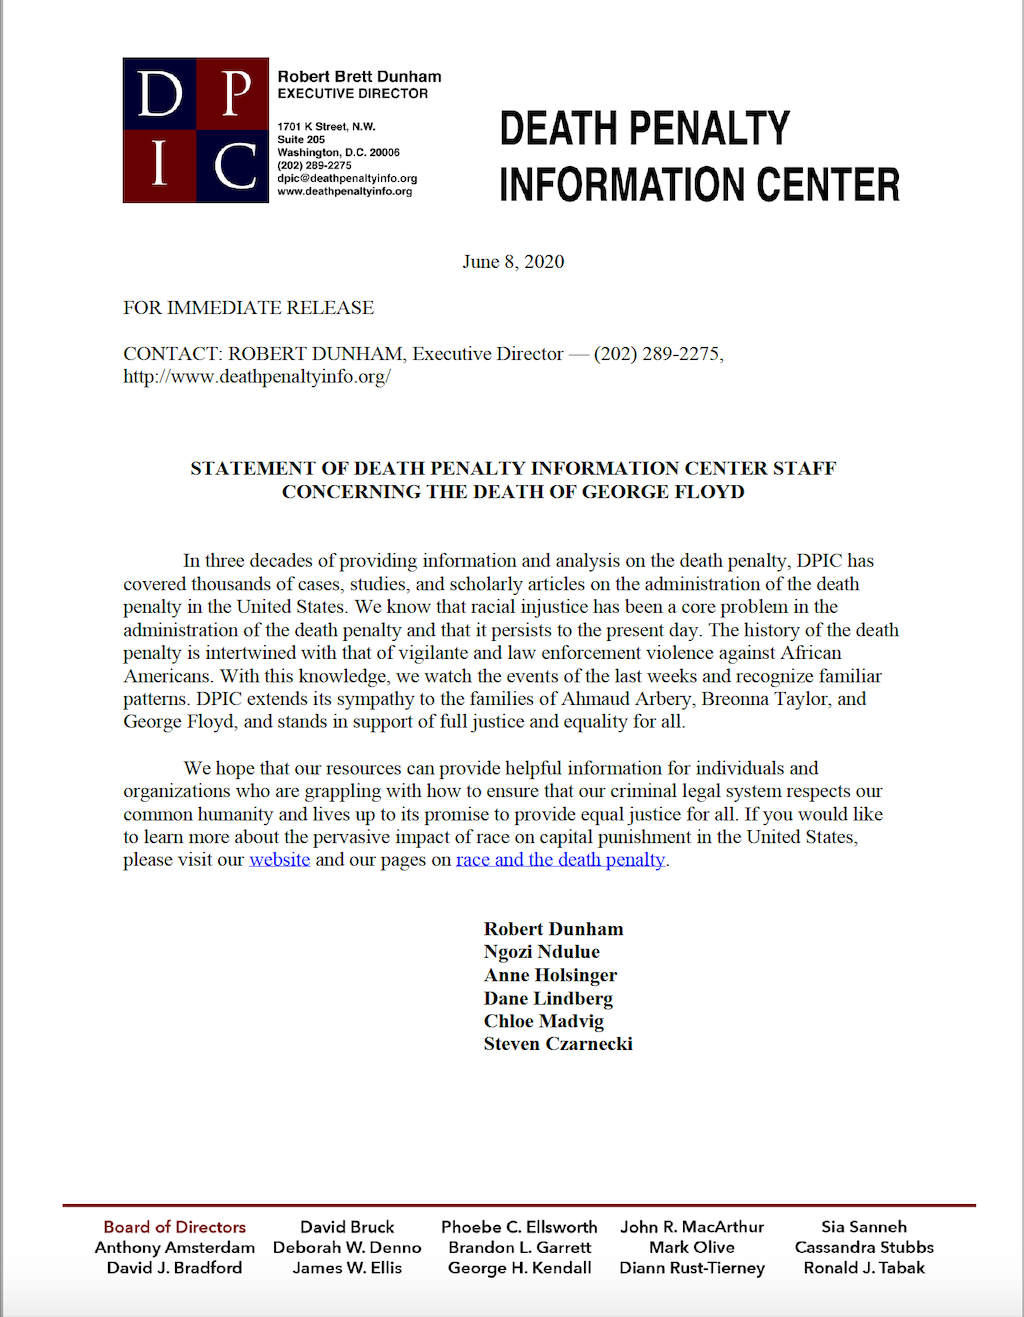 Death Penalty Information Center Statement Concerning the Death of George Floyd